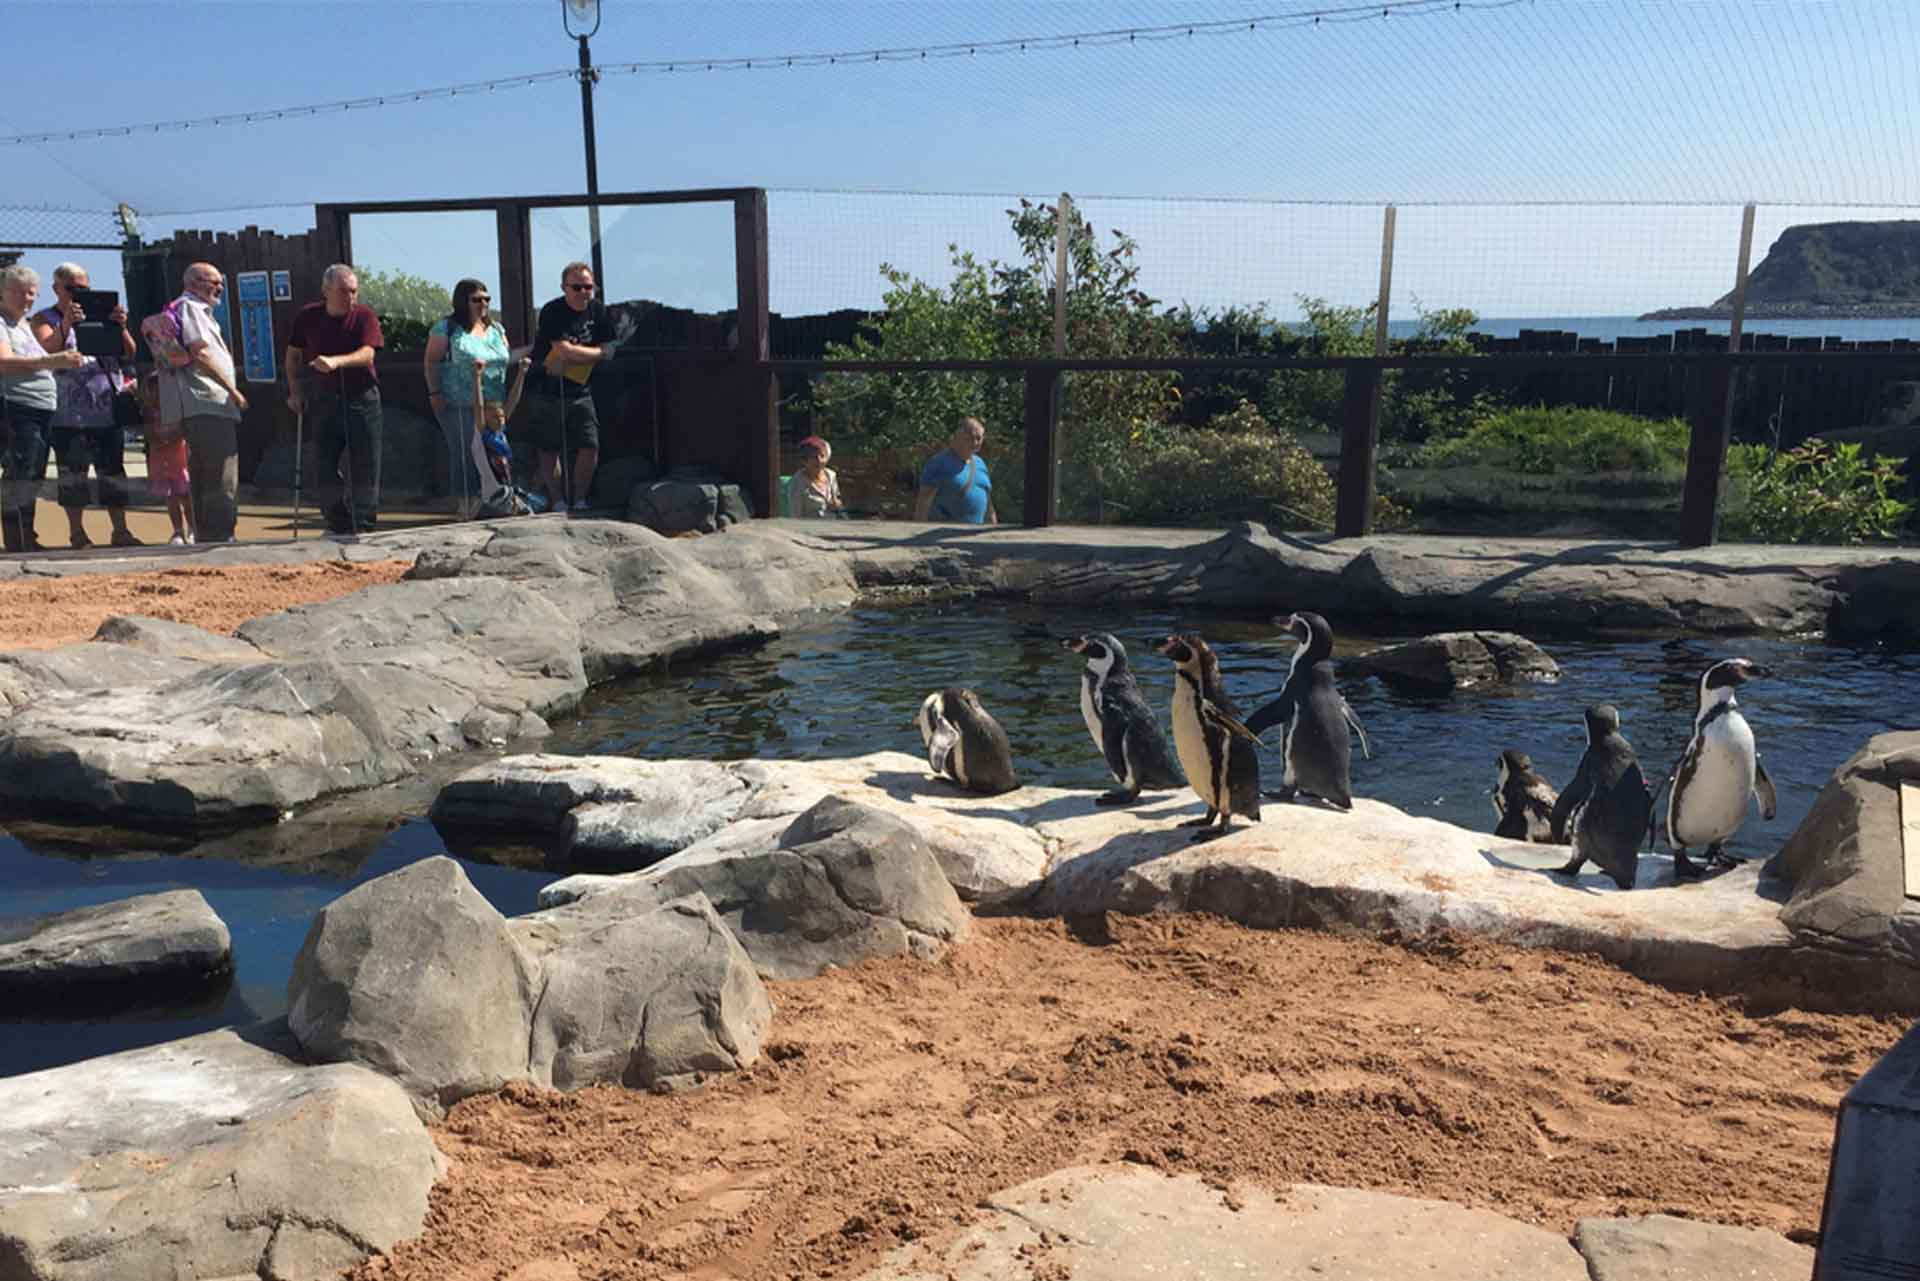 Penguin Island at SEA LIFE Scarborough